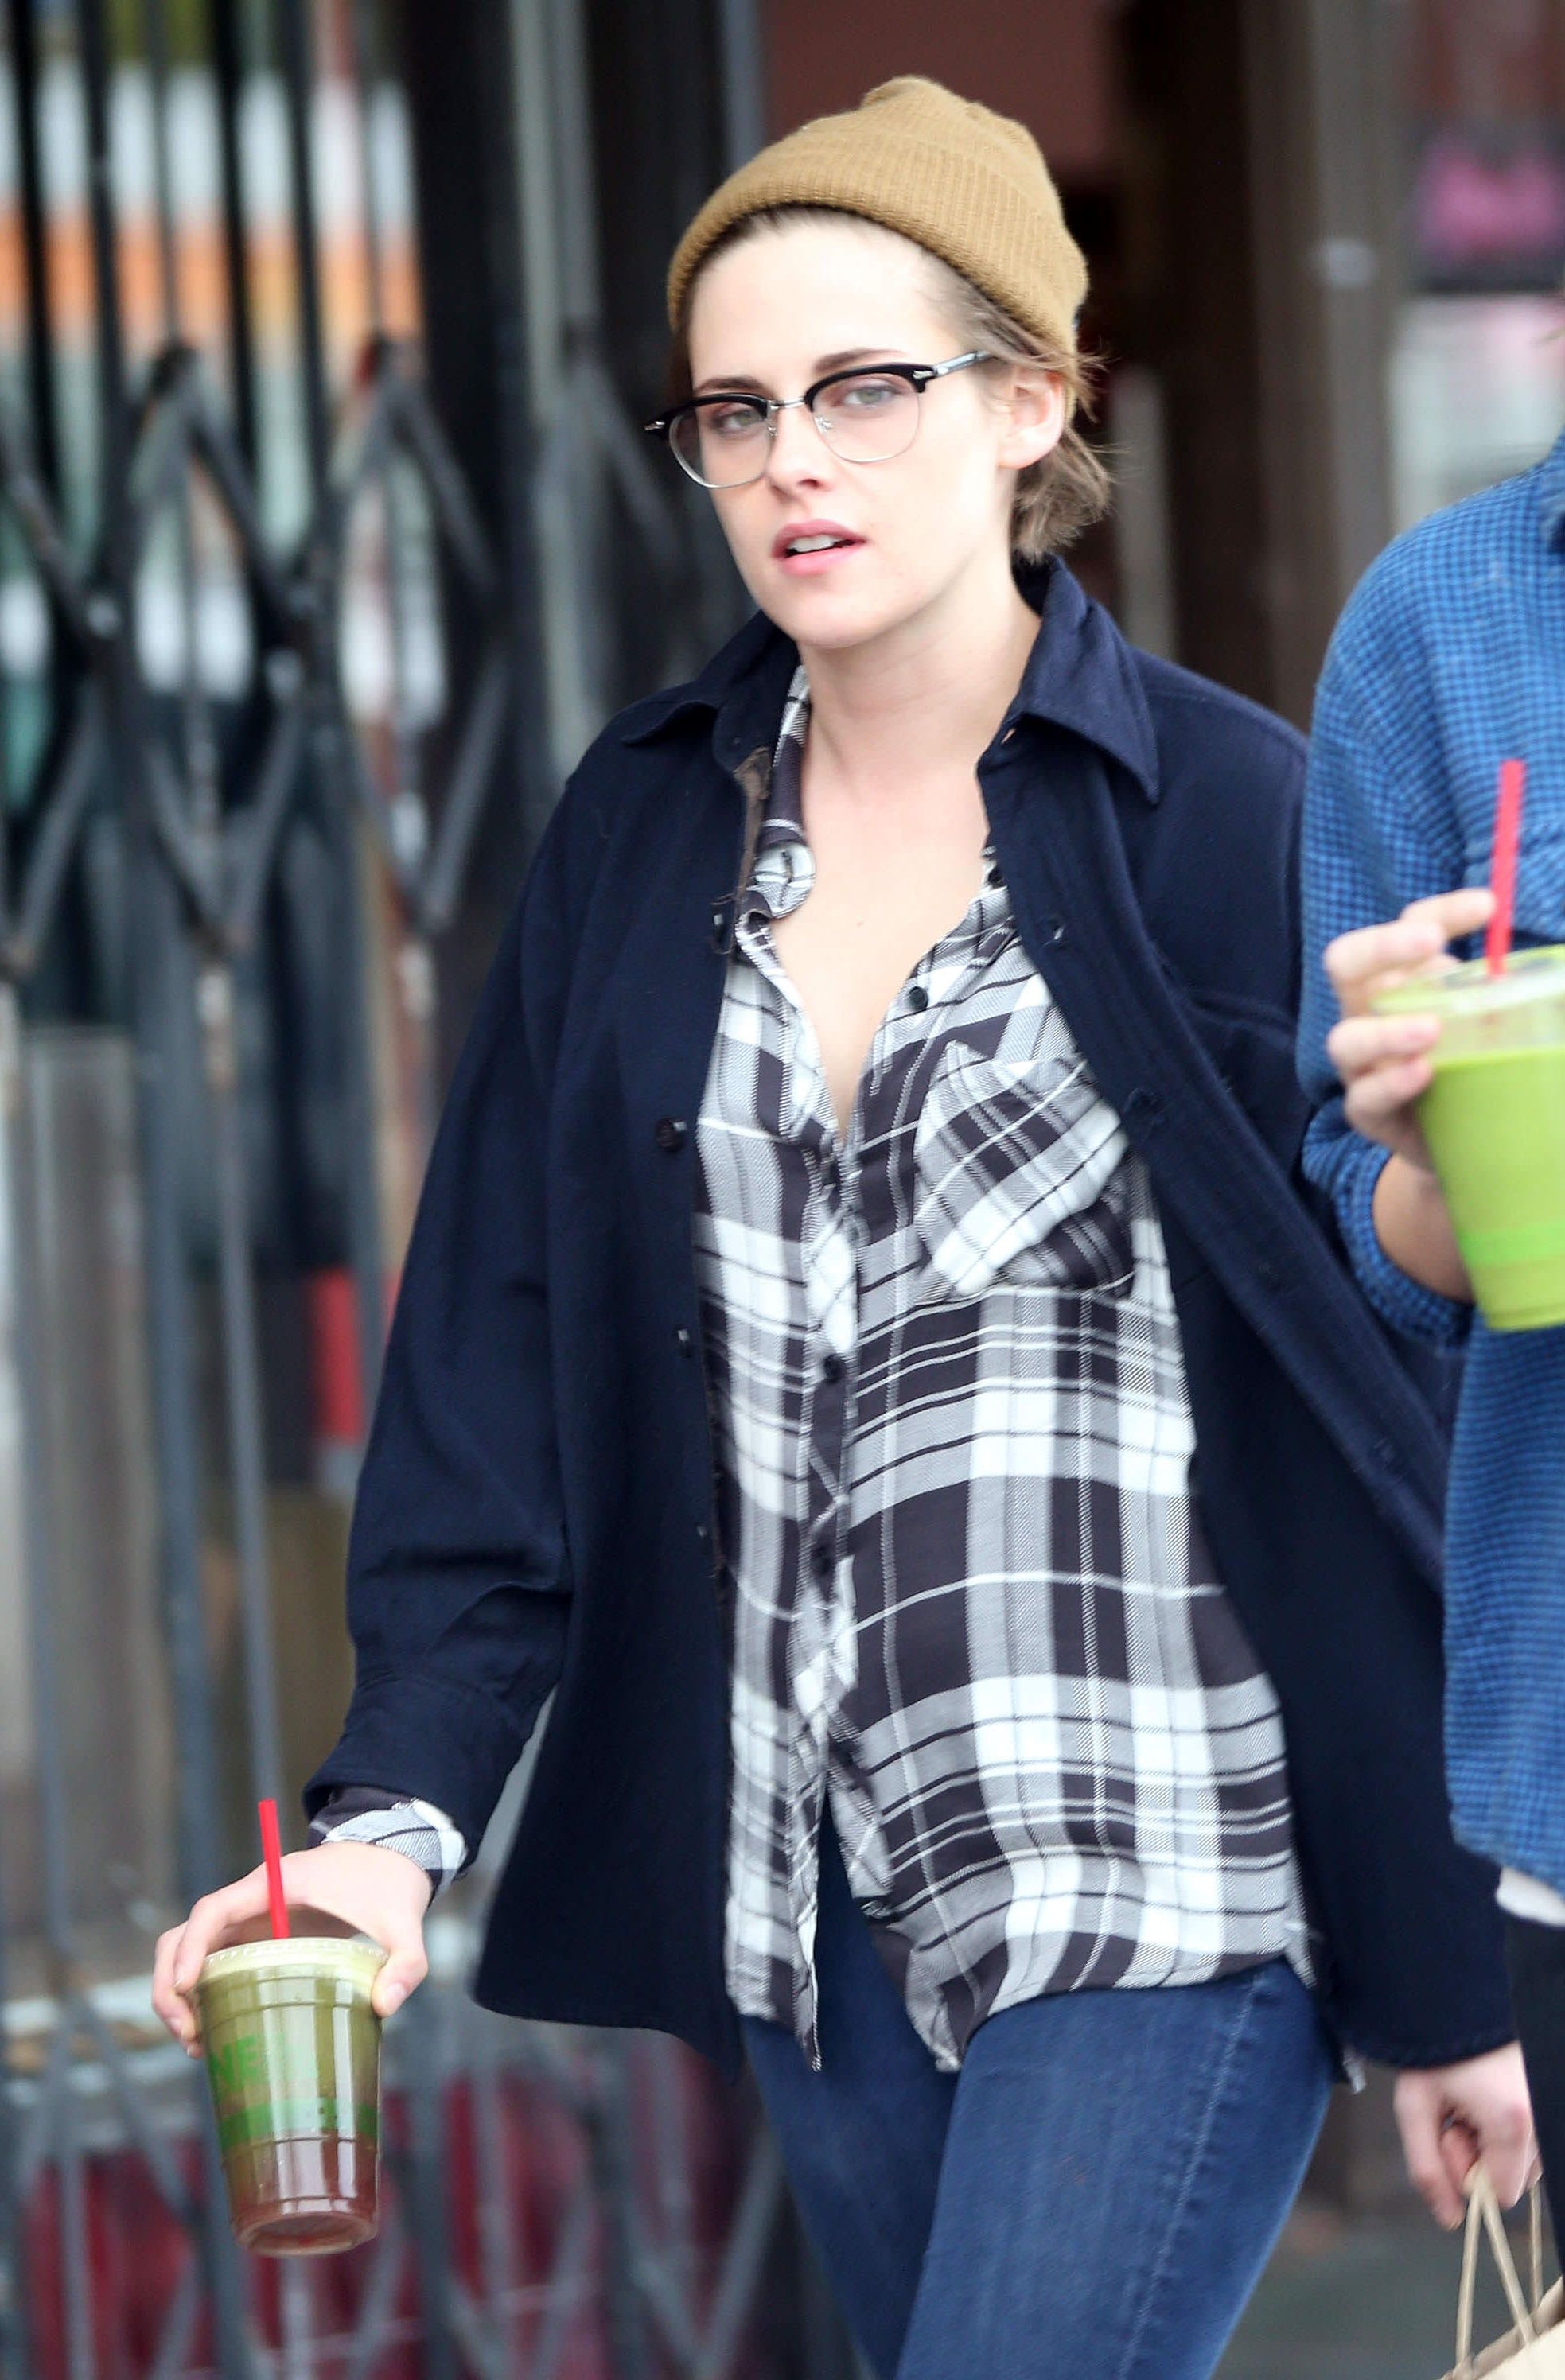 Over 100 new pictures of Kristen out in LA today http